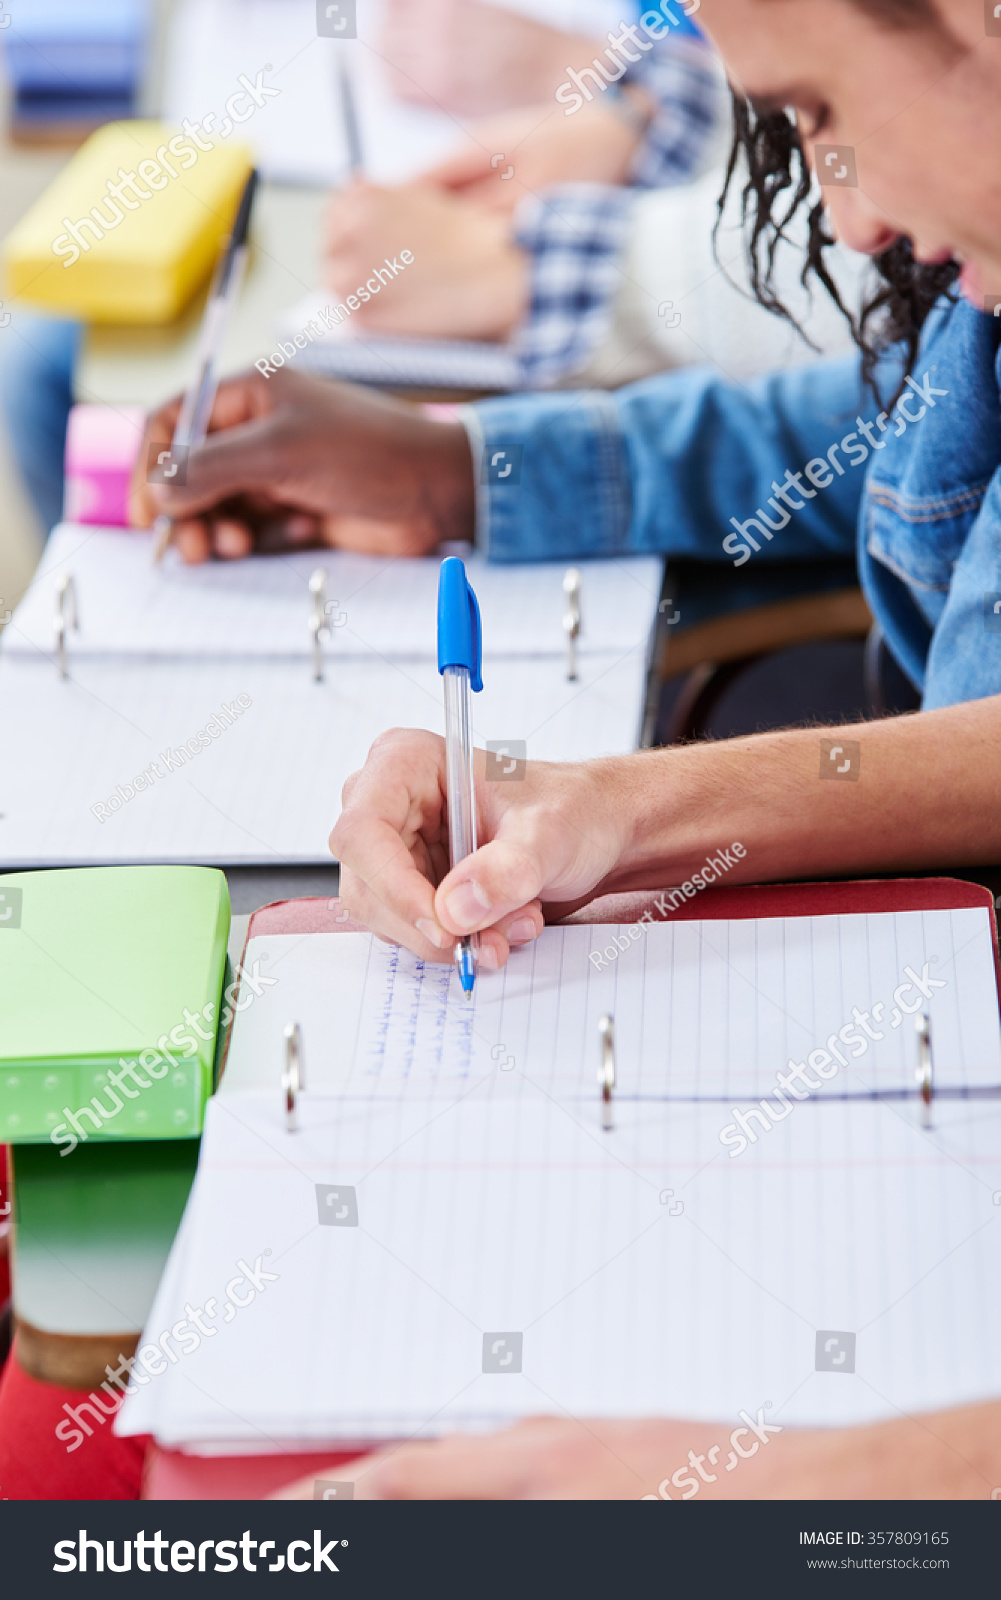 Students Taking Notes Class Their Notebooks Stock Photo ...